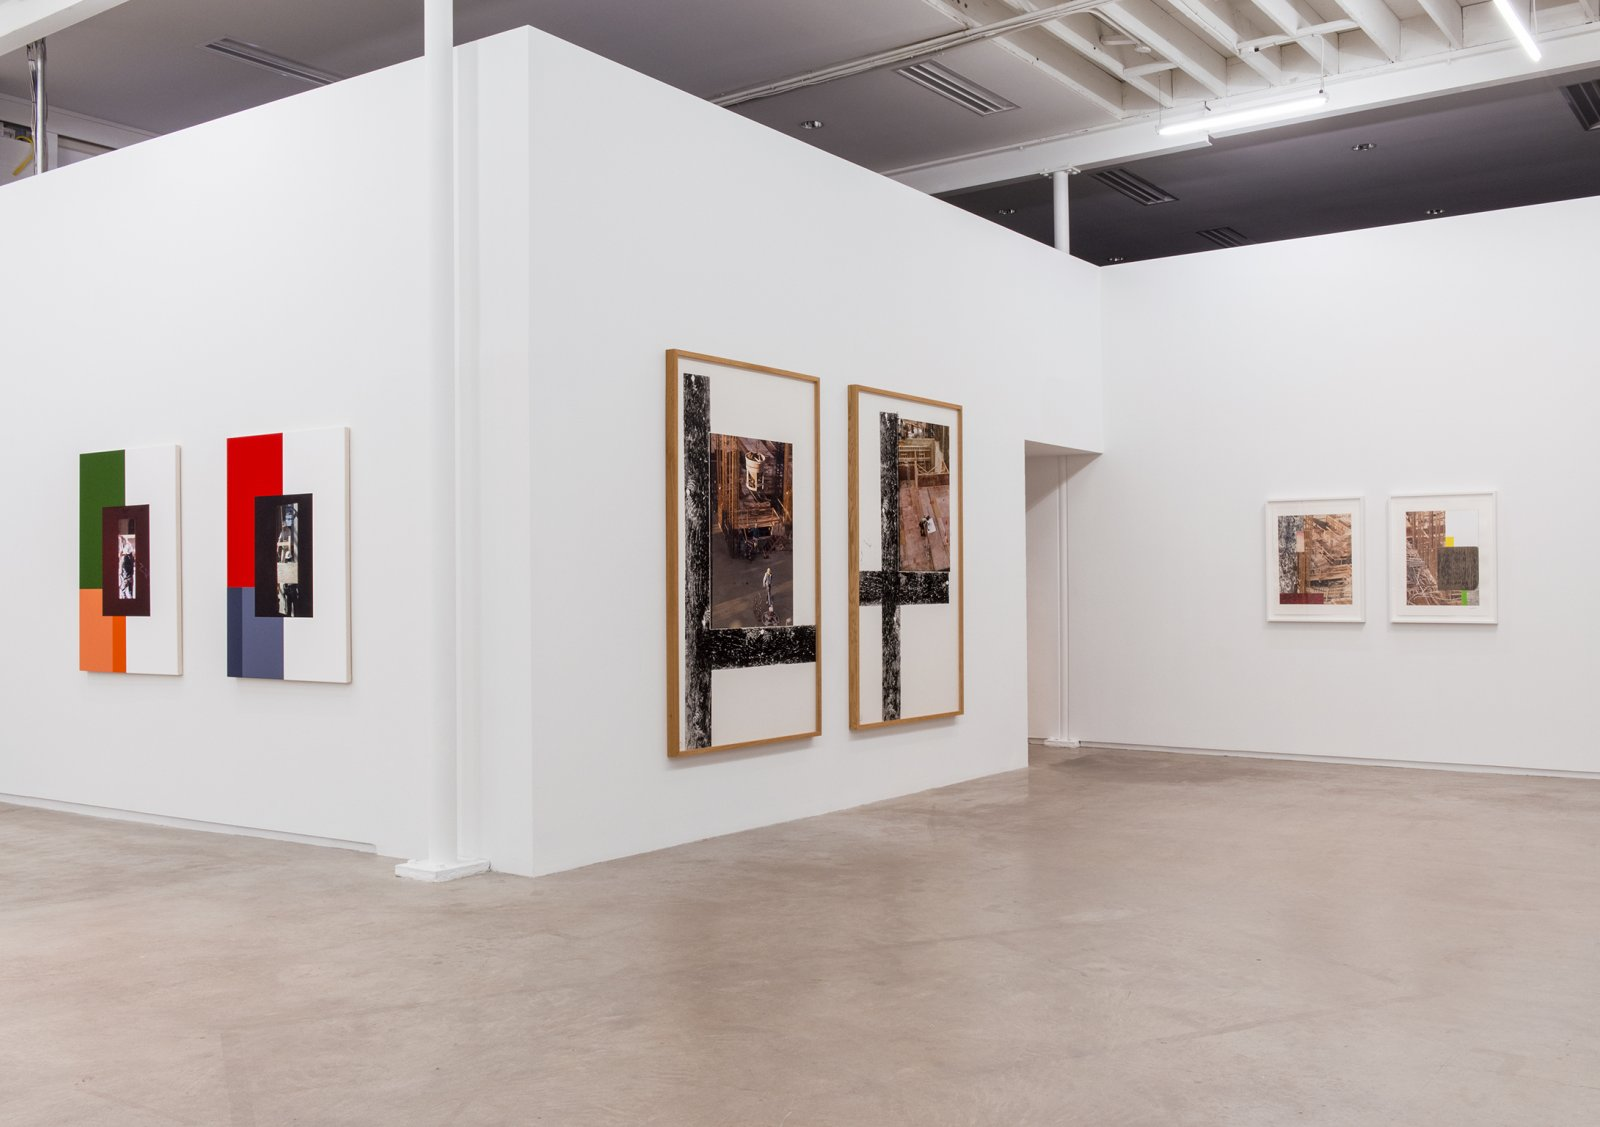 Ian Wallace, installation view, The Construction Site, Catriona Jeffries, 2015​​ by Ian Wallace